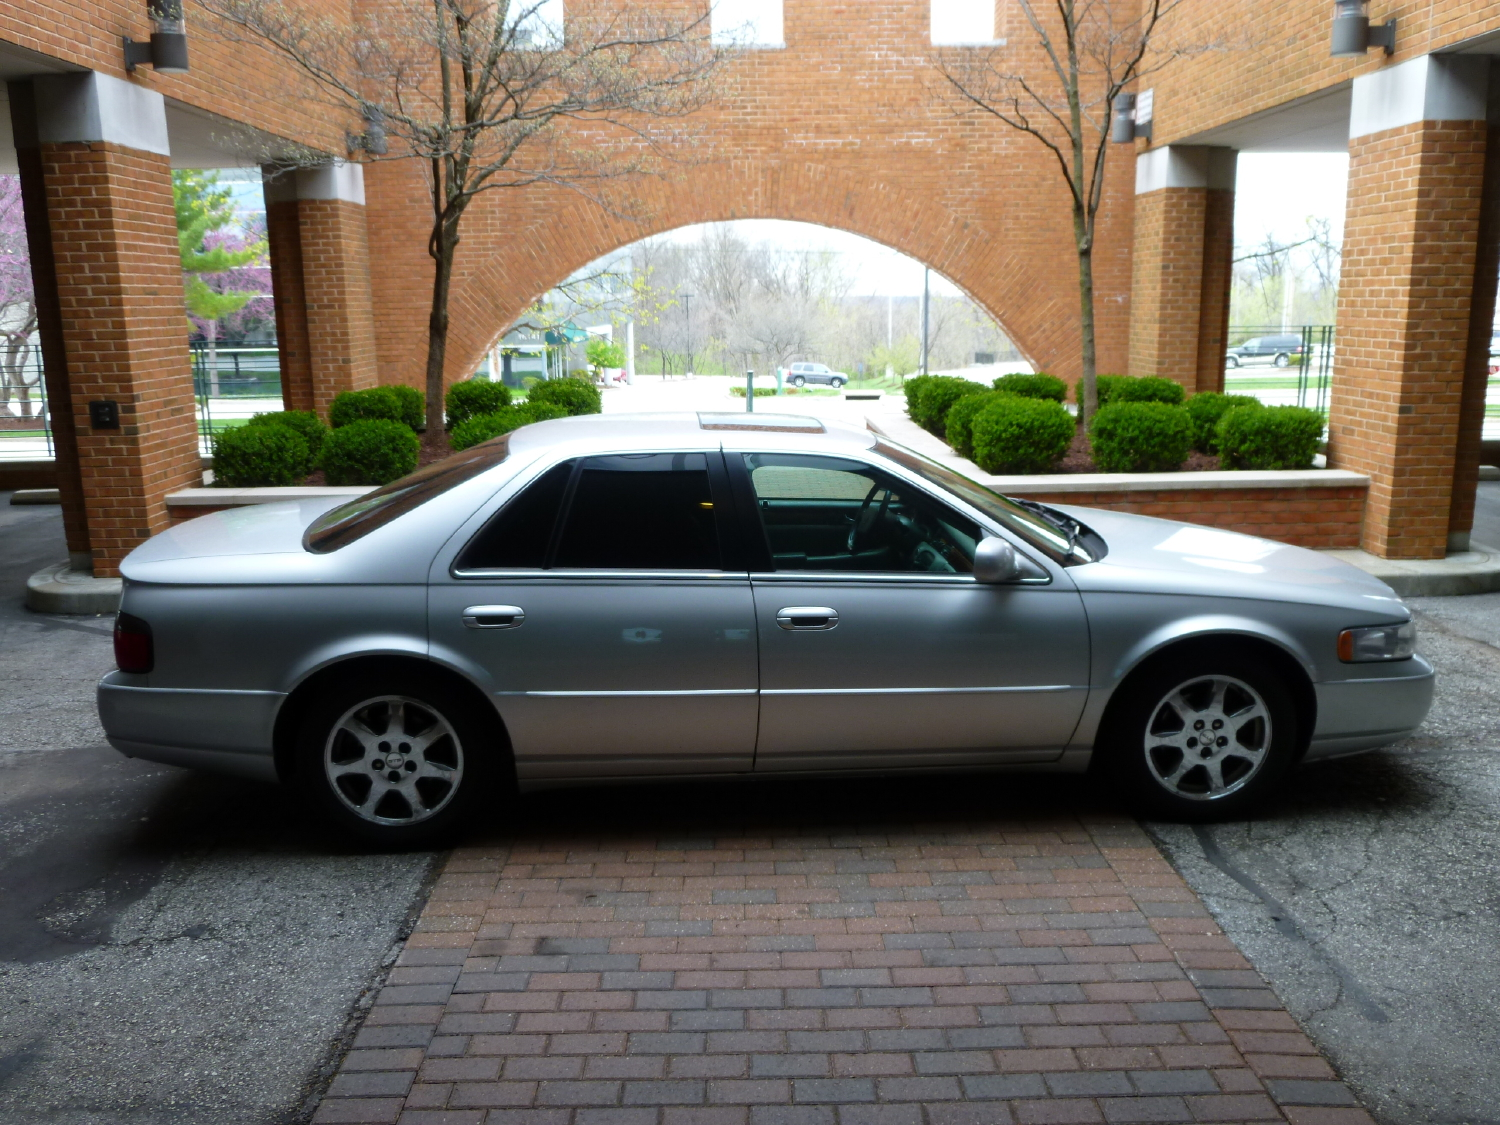 review and video 2001 cadillac seville sts car and truck reviews reviews jesda com cars travel etc 2001 cadillac seville sts car